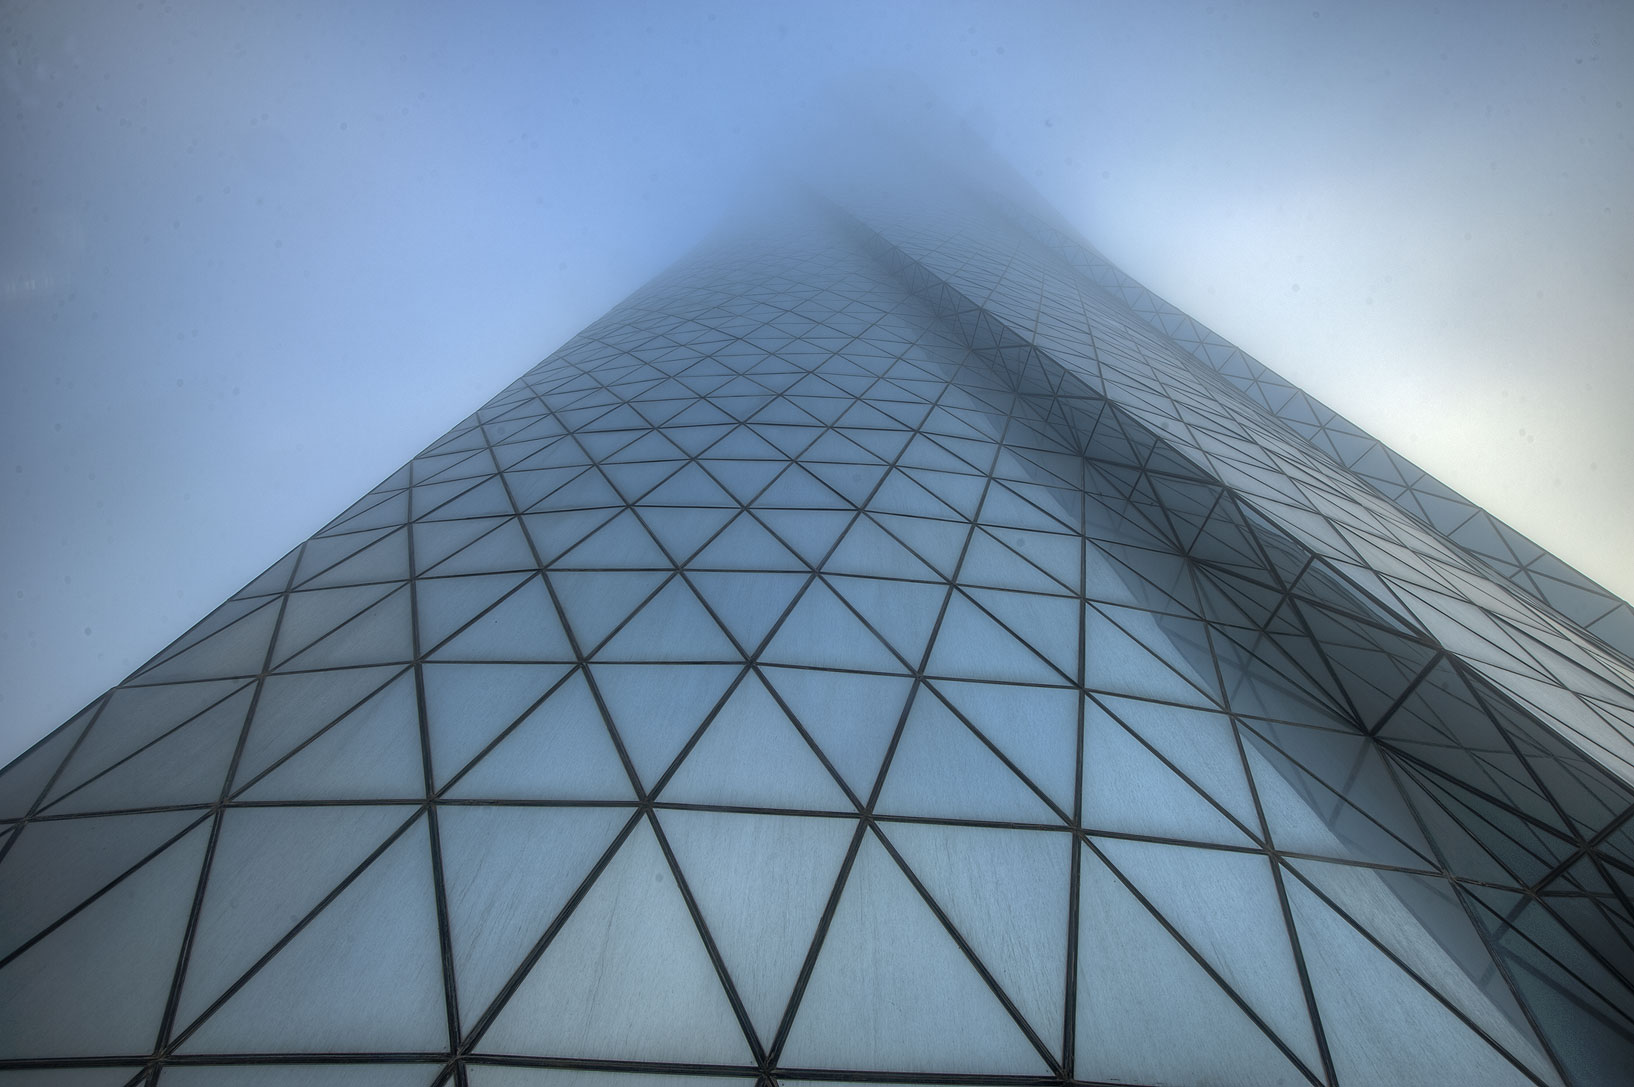 Al Bidda Tower in West Bay in fog, looking up. Doha, Qatar